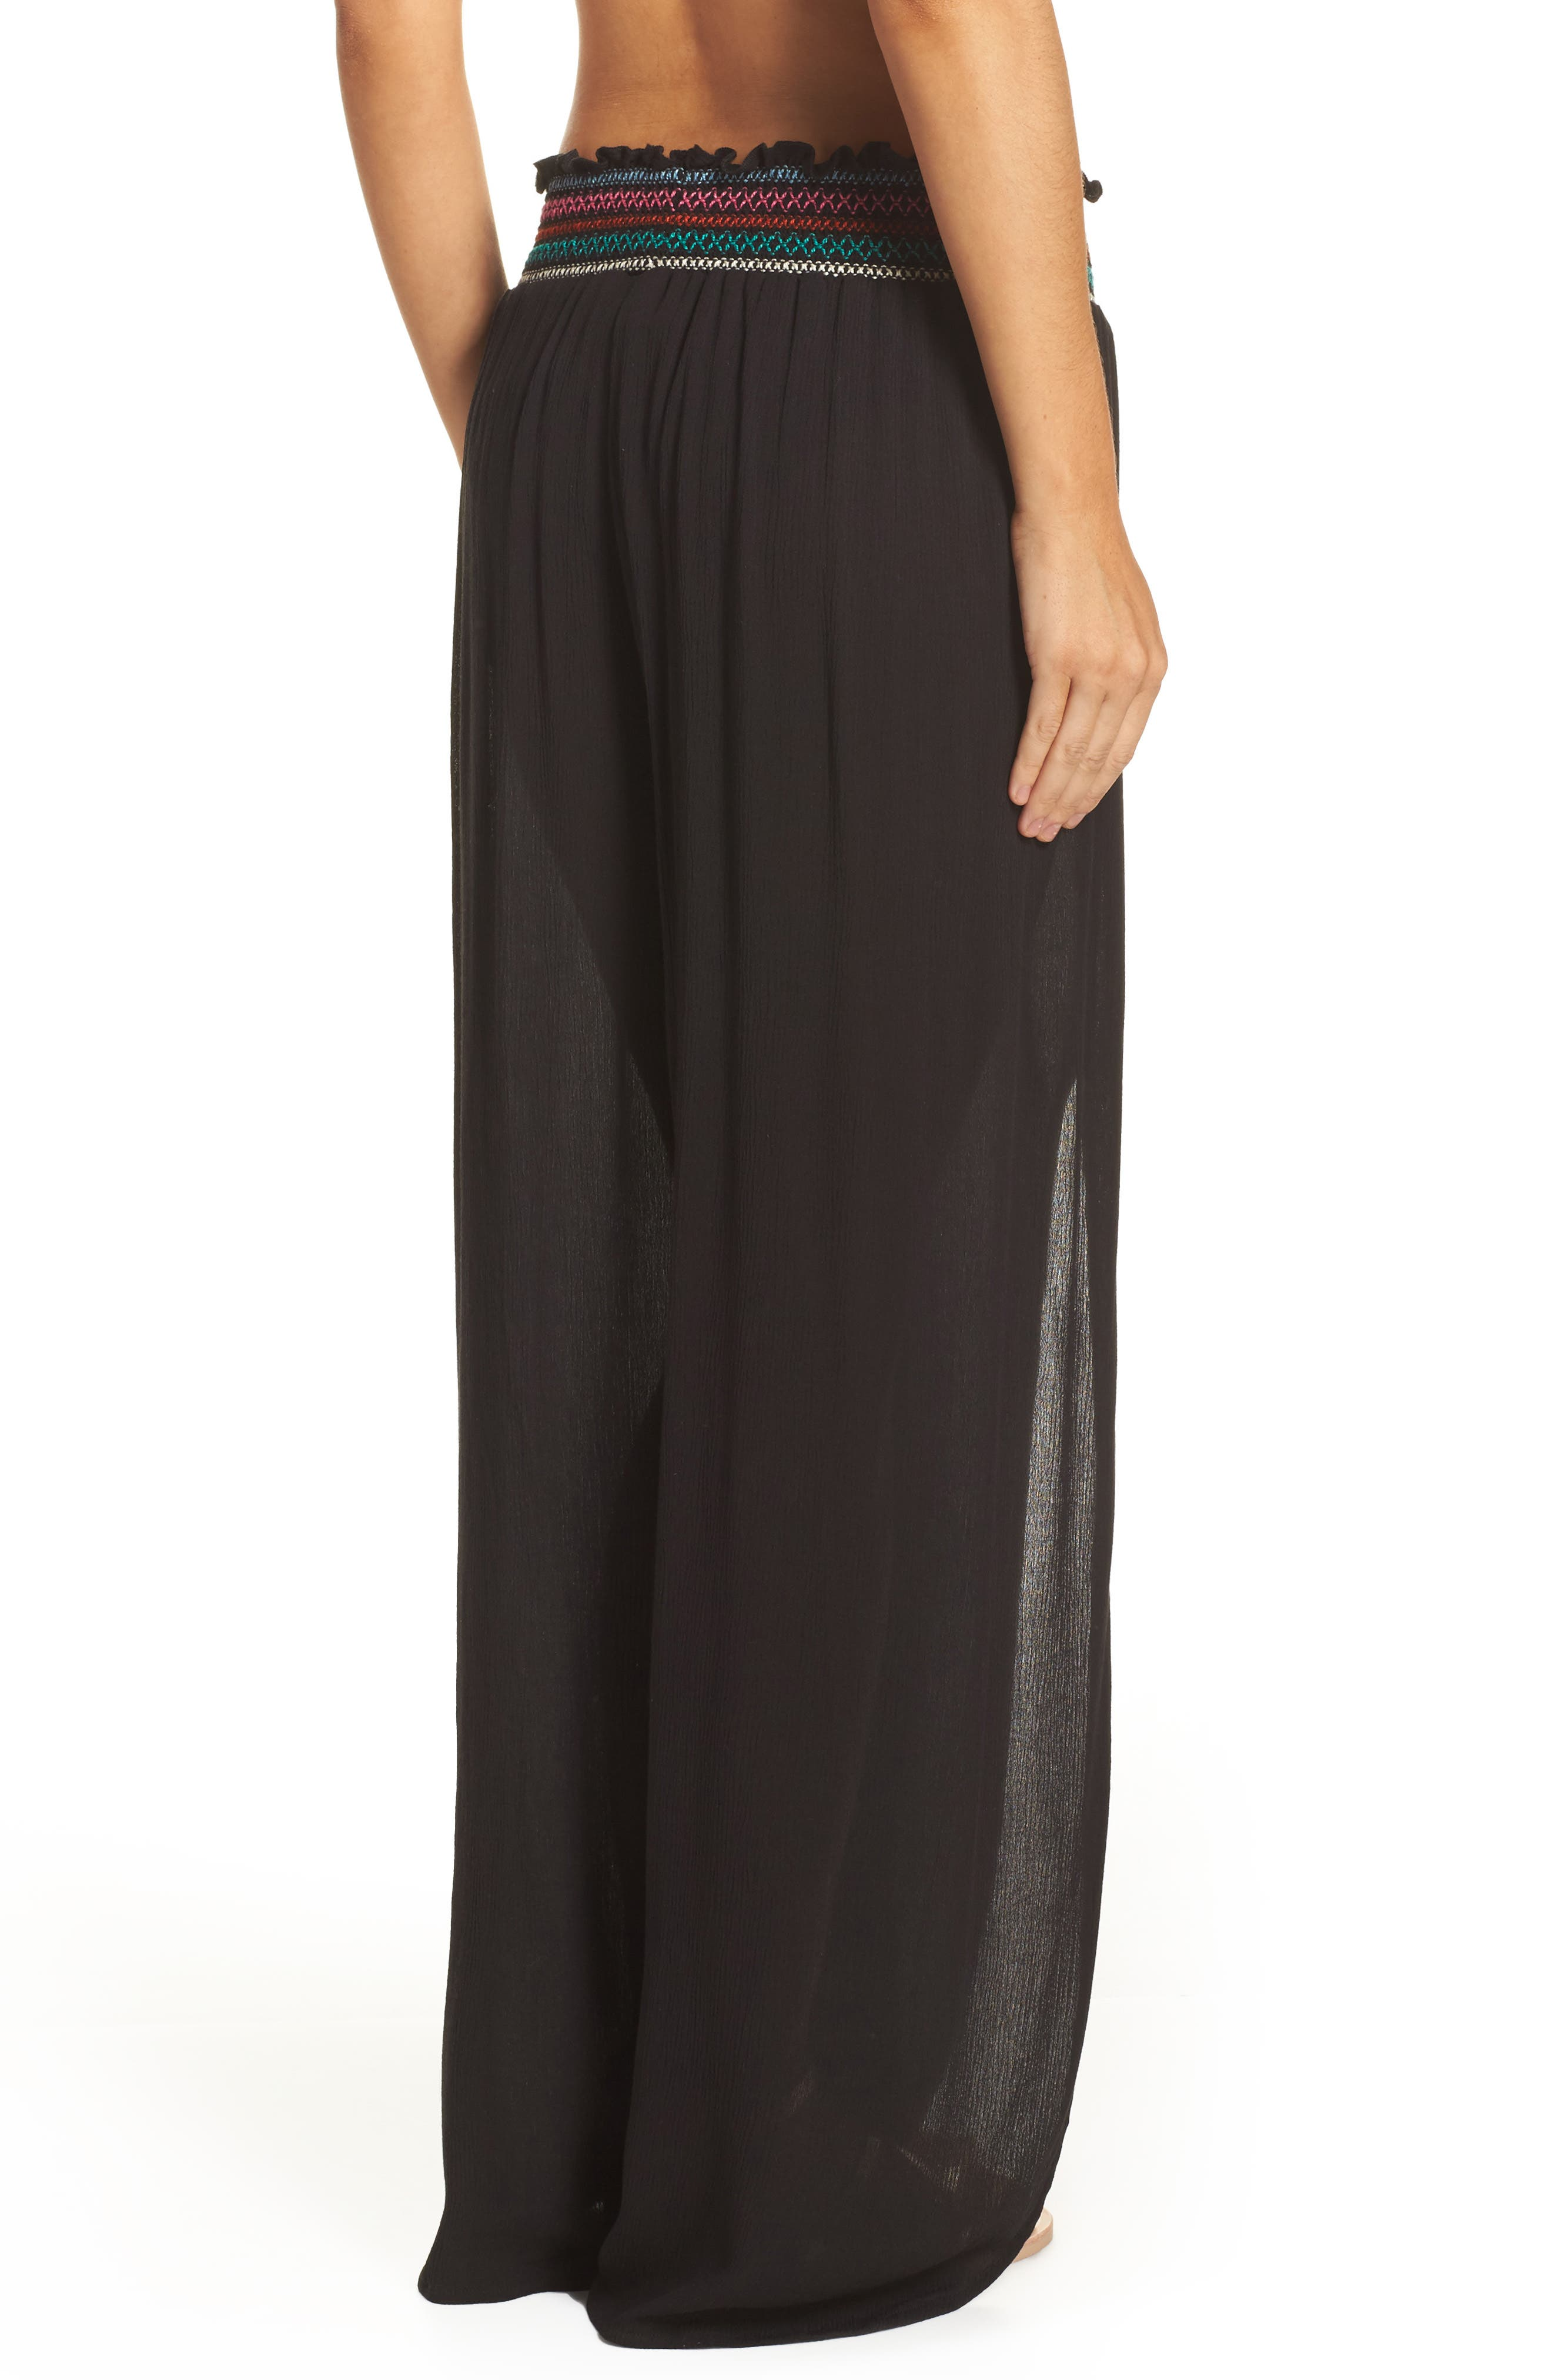 Crystal Cove Cover-Up Pants,                             Alternate thumbnail 2, color,                             001